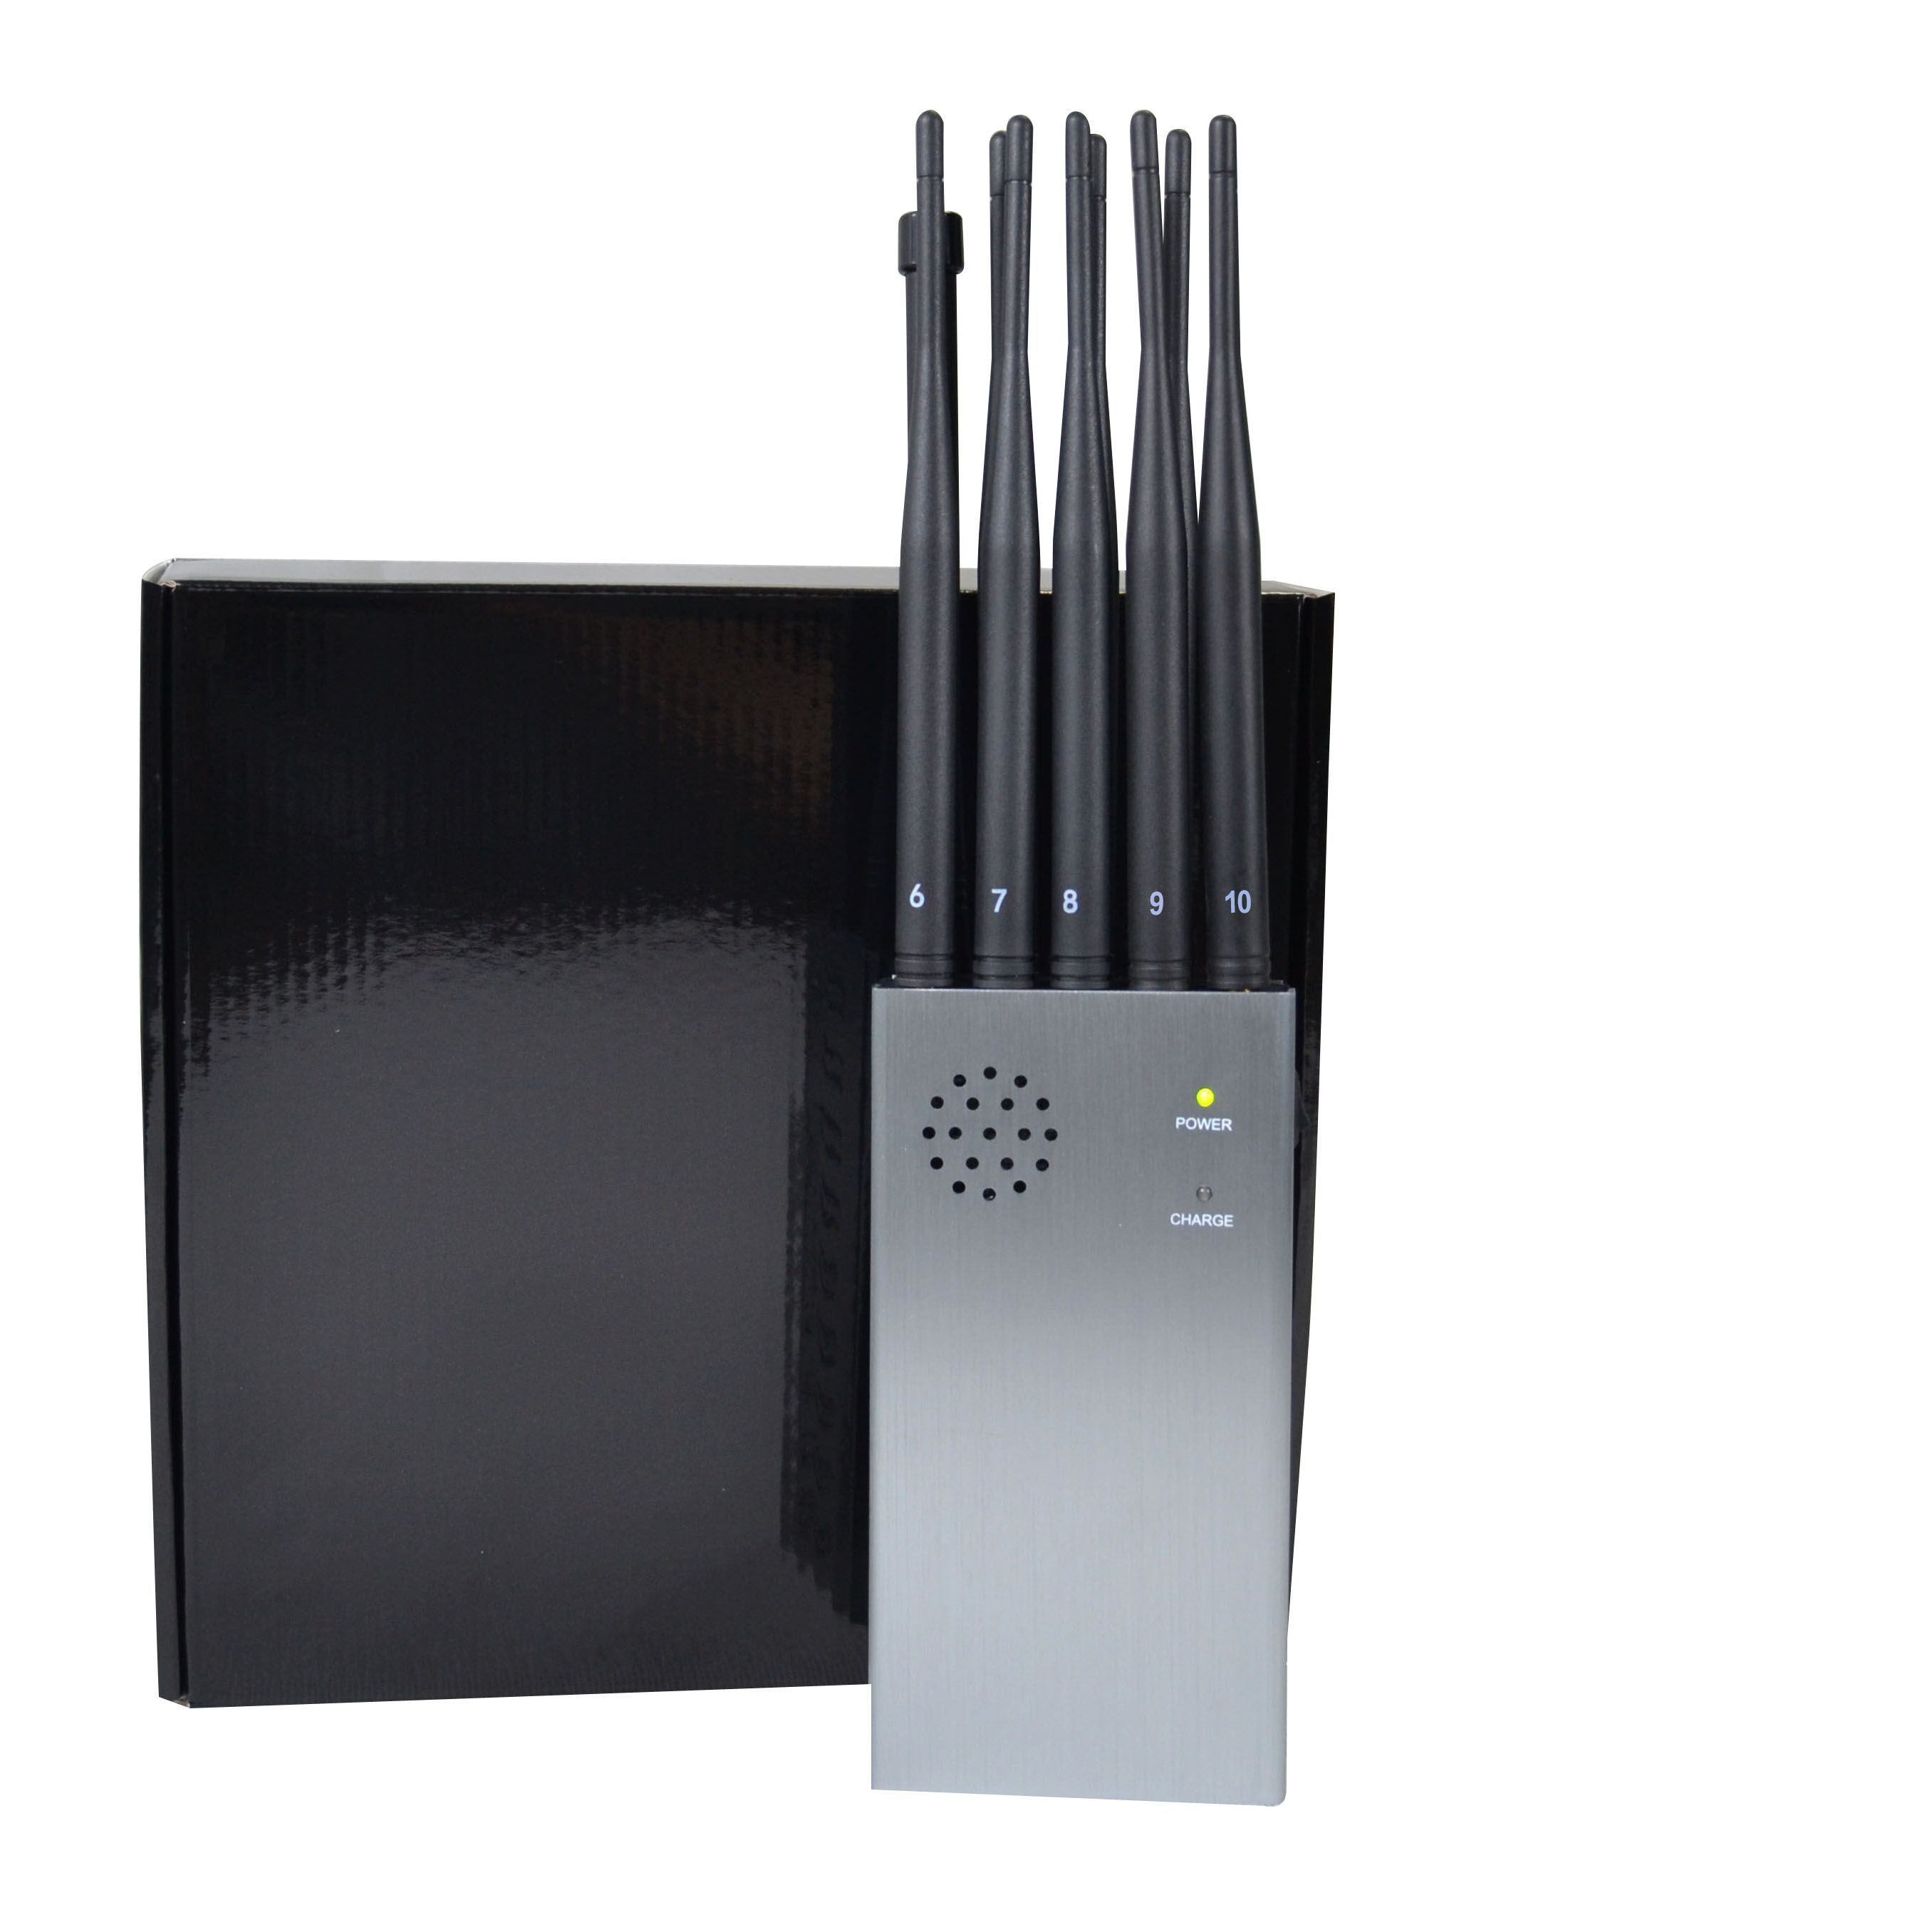 jamming signal ratio calculation - China King Jammer with Portable 10 Antennas Including 2g 3G 5g 4G WiFi, GPS Remote Control Lojack Signals - China 8000mA Battery Jammer, Large Volume Power Signal Blocker